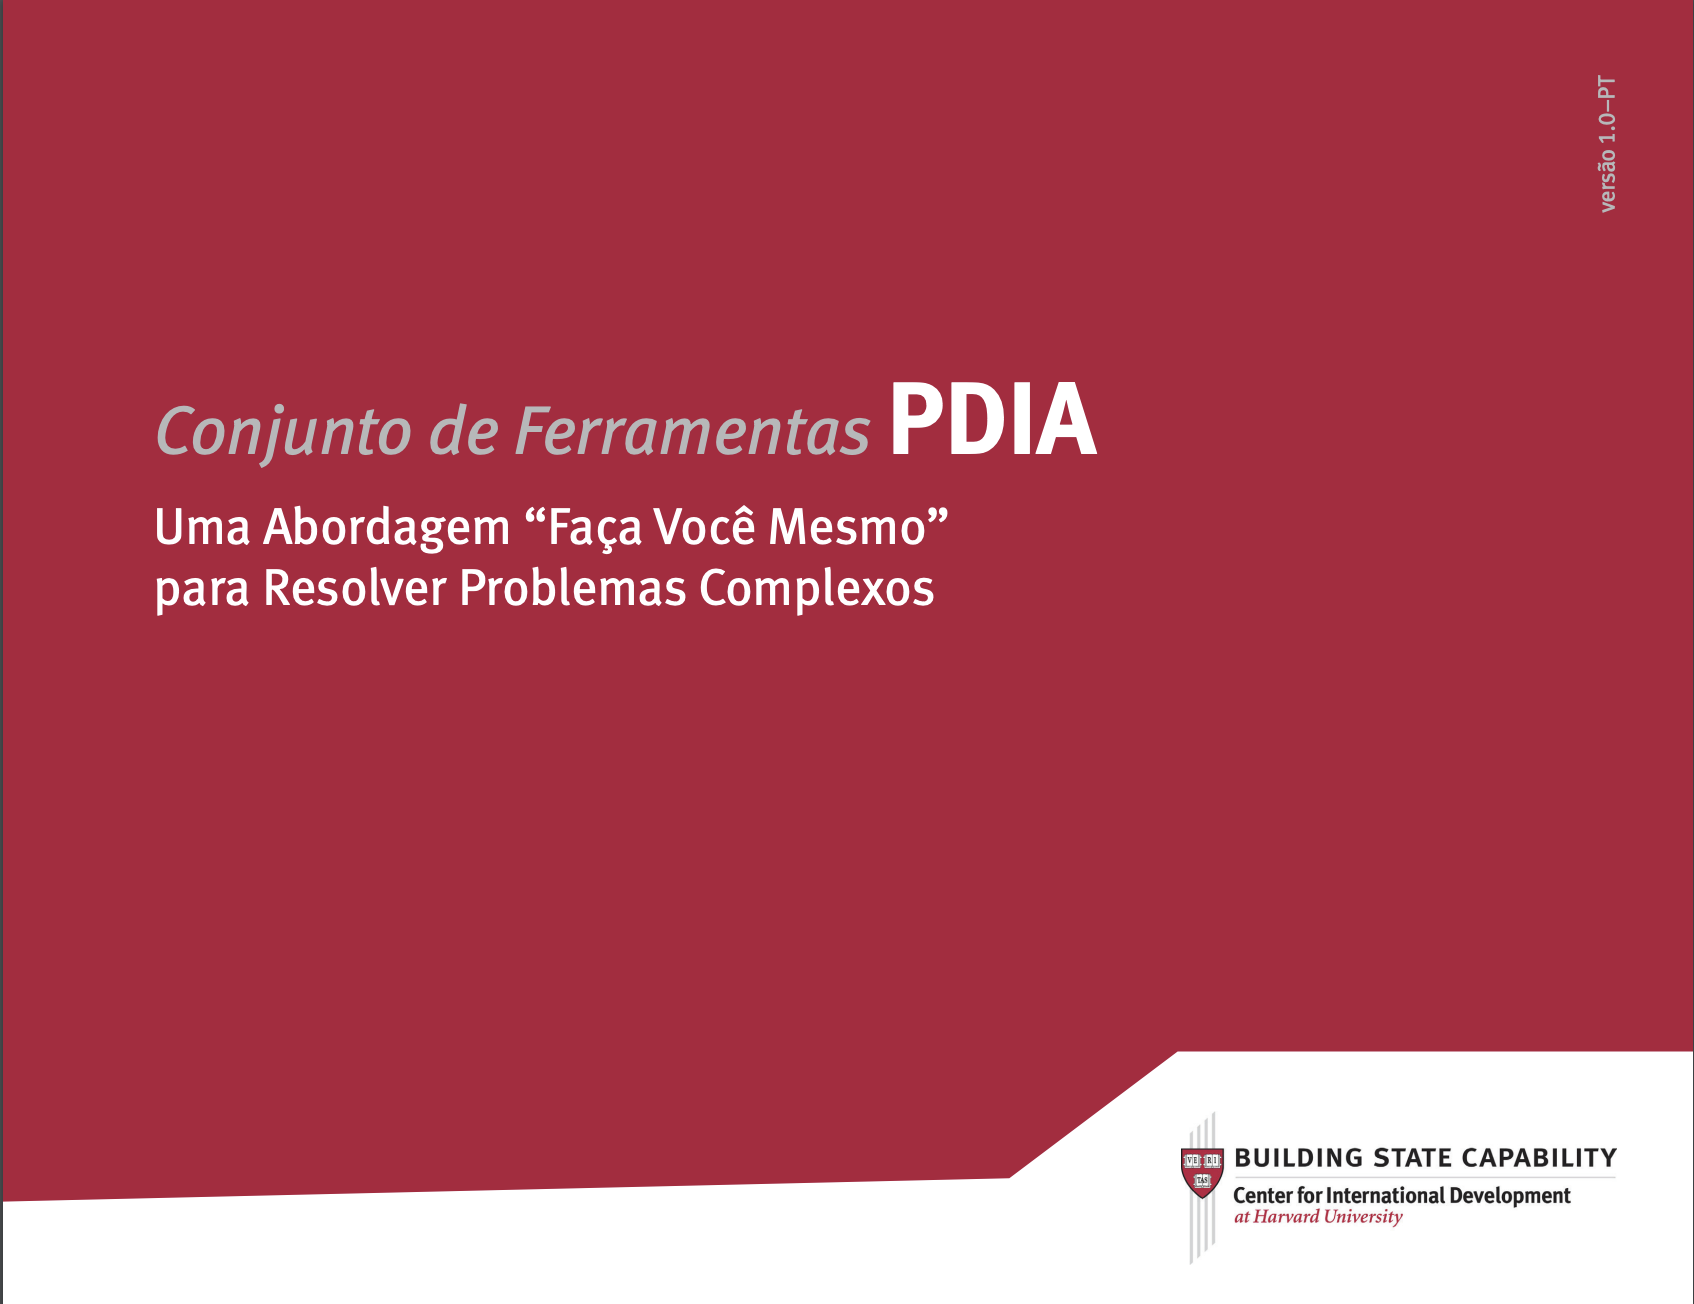 PDIA toolkit cover in Portuguese